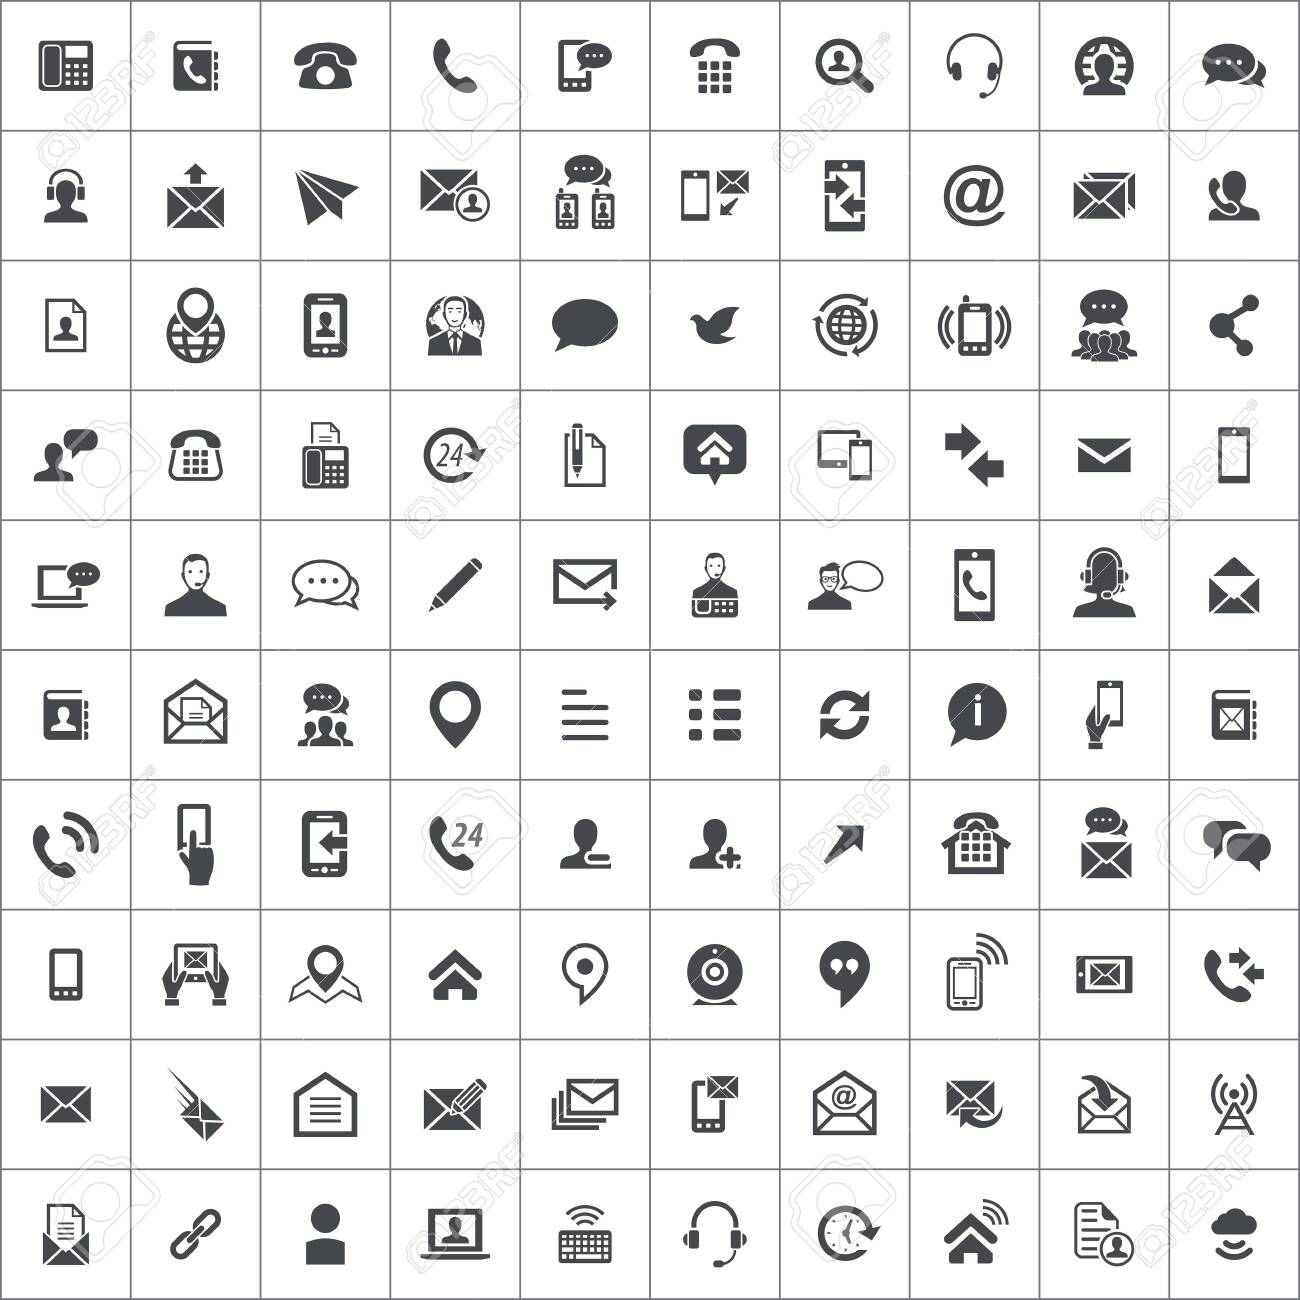 contact us 100 icons universal set for web and mobile. - 130601679